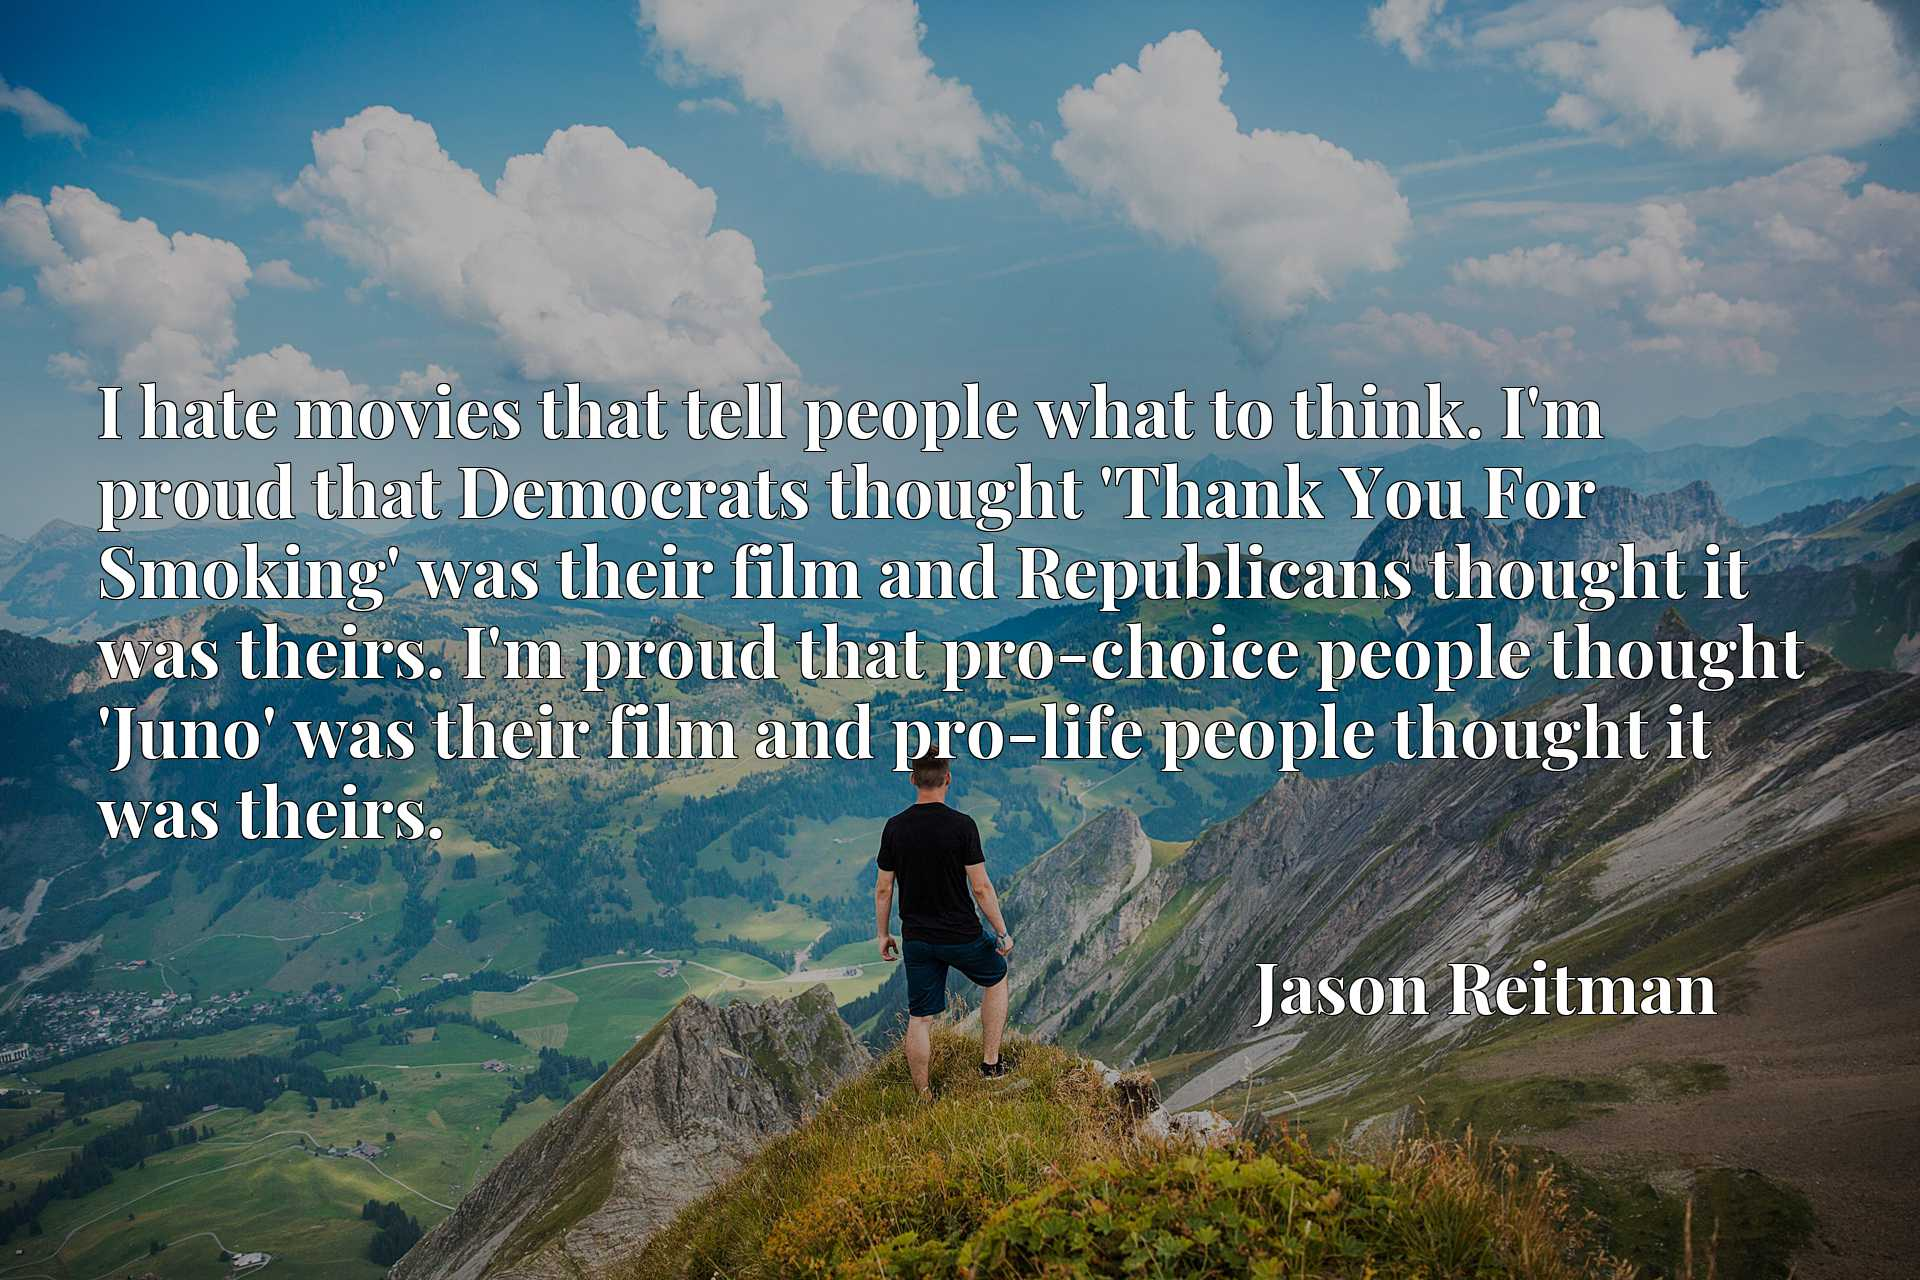 I hate movies that tell people what to think. I'm proud that Democrats thought 'Thank You For Smoking' was their film and Republicans thought it was theirs. I'm proud that pro-choice people thought 'Juno' was their film and pro-life people thought it was theirs.